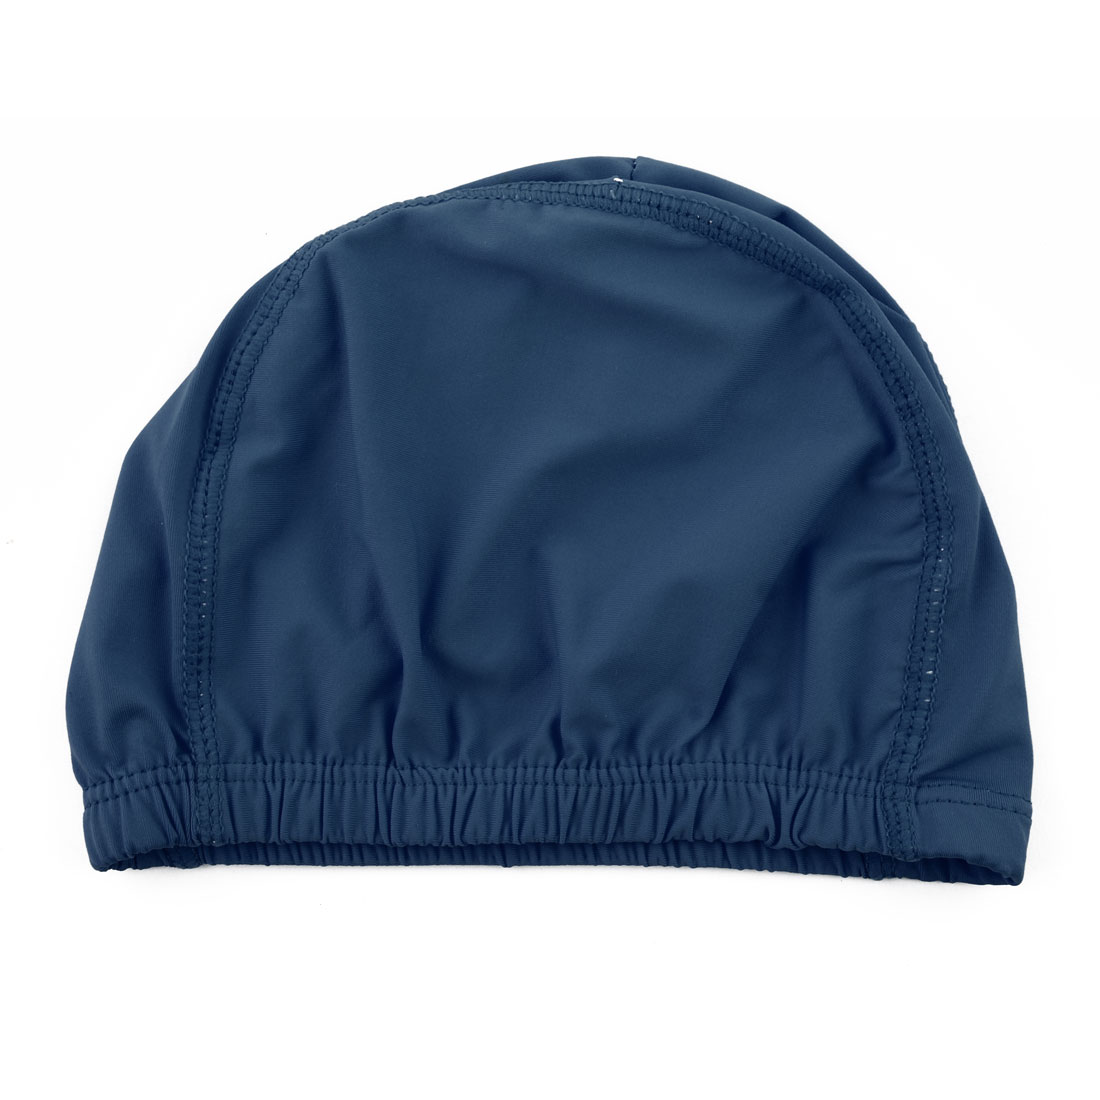 Unisex Polyester Dome Shaped Water Resistant Stretchable Swimming Cap Portable Bathing Hat Navy Blue